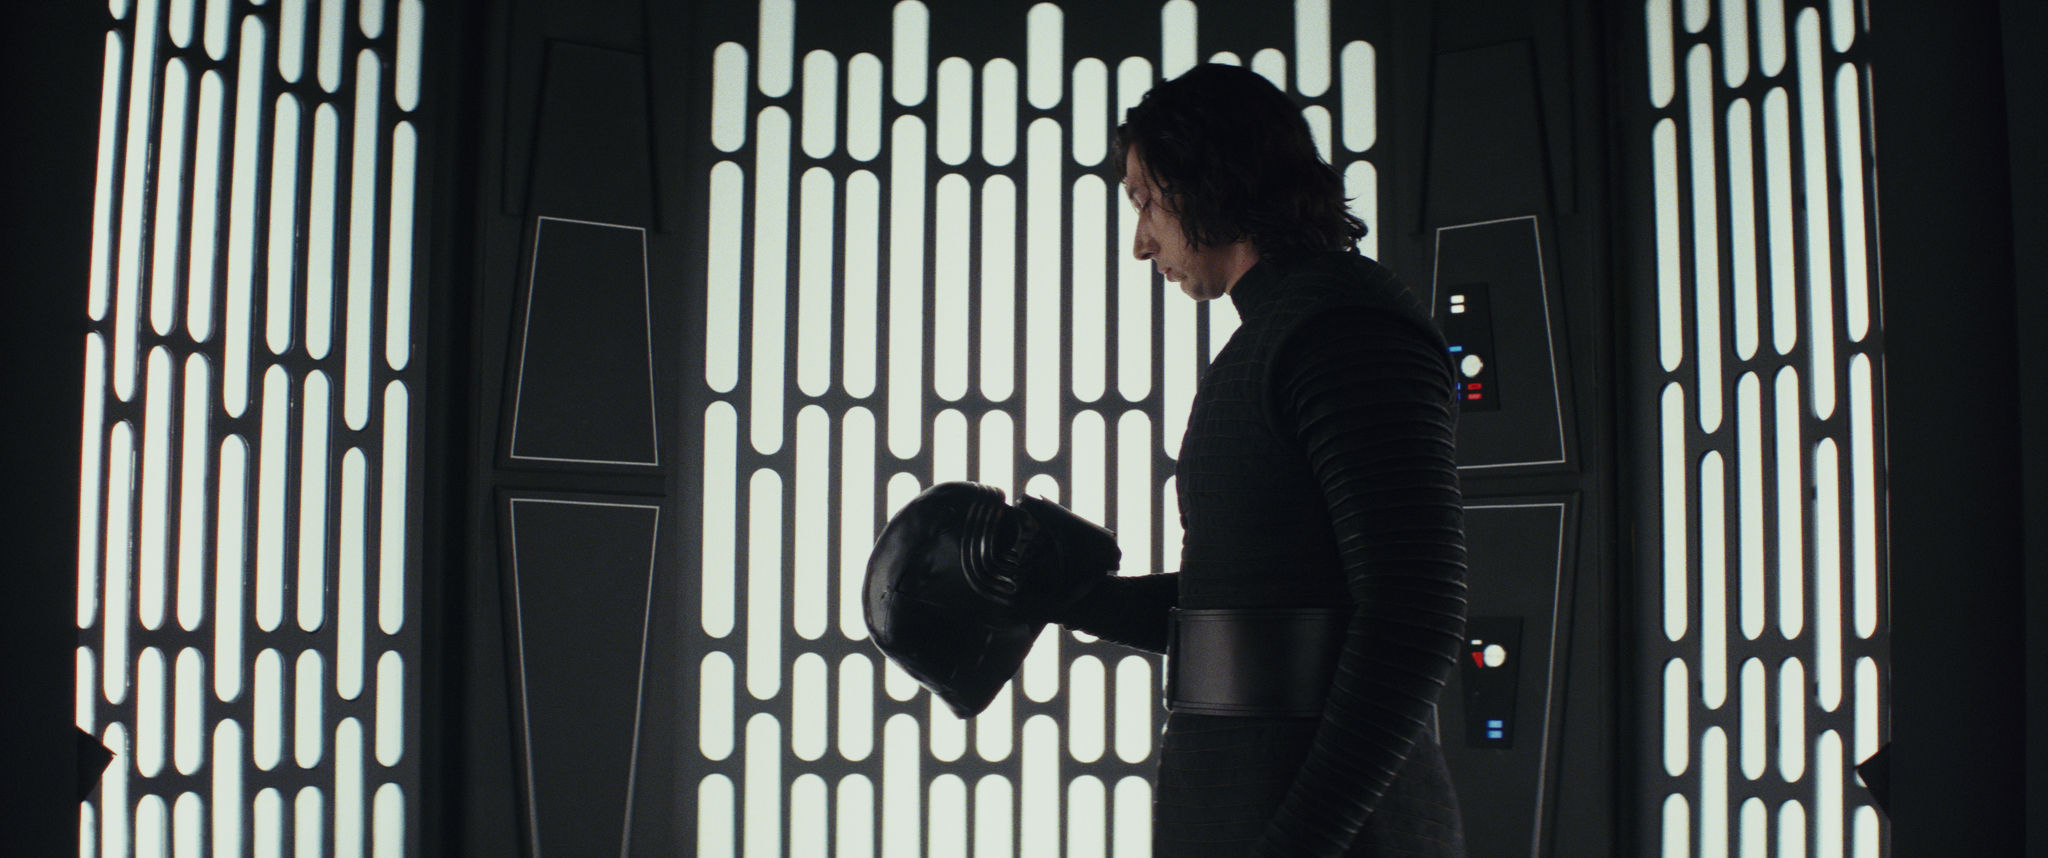 Adam Driver is exceptional as the conflicted Kylo Ren in The Last Jedi